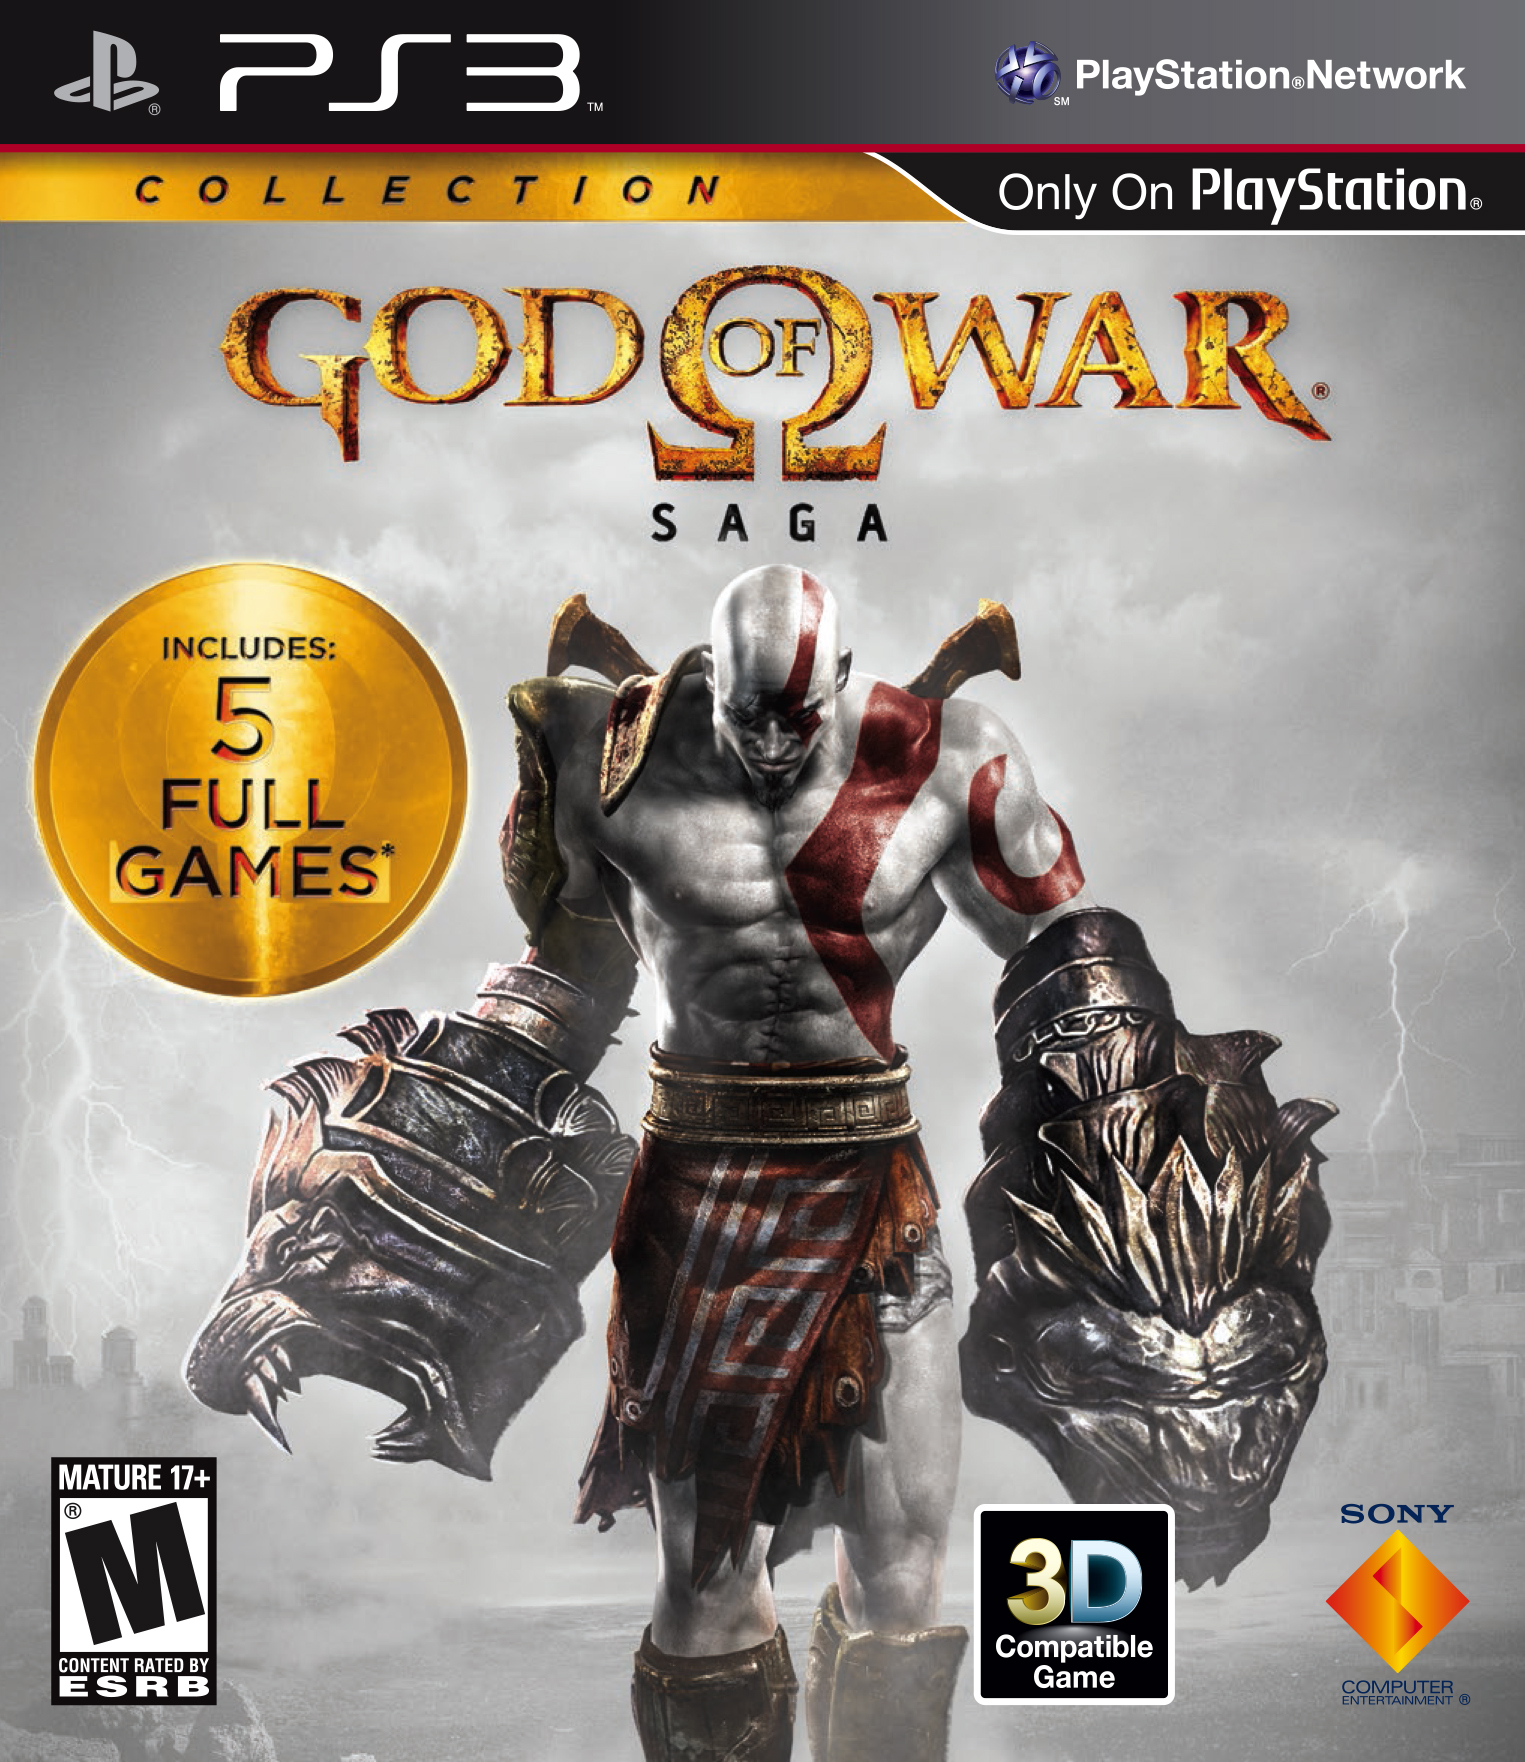 sony_sony_collection_god_of_war_keyart